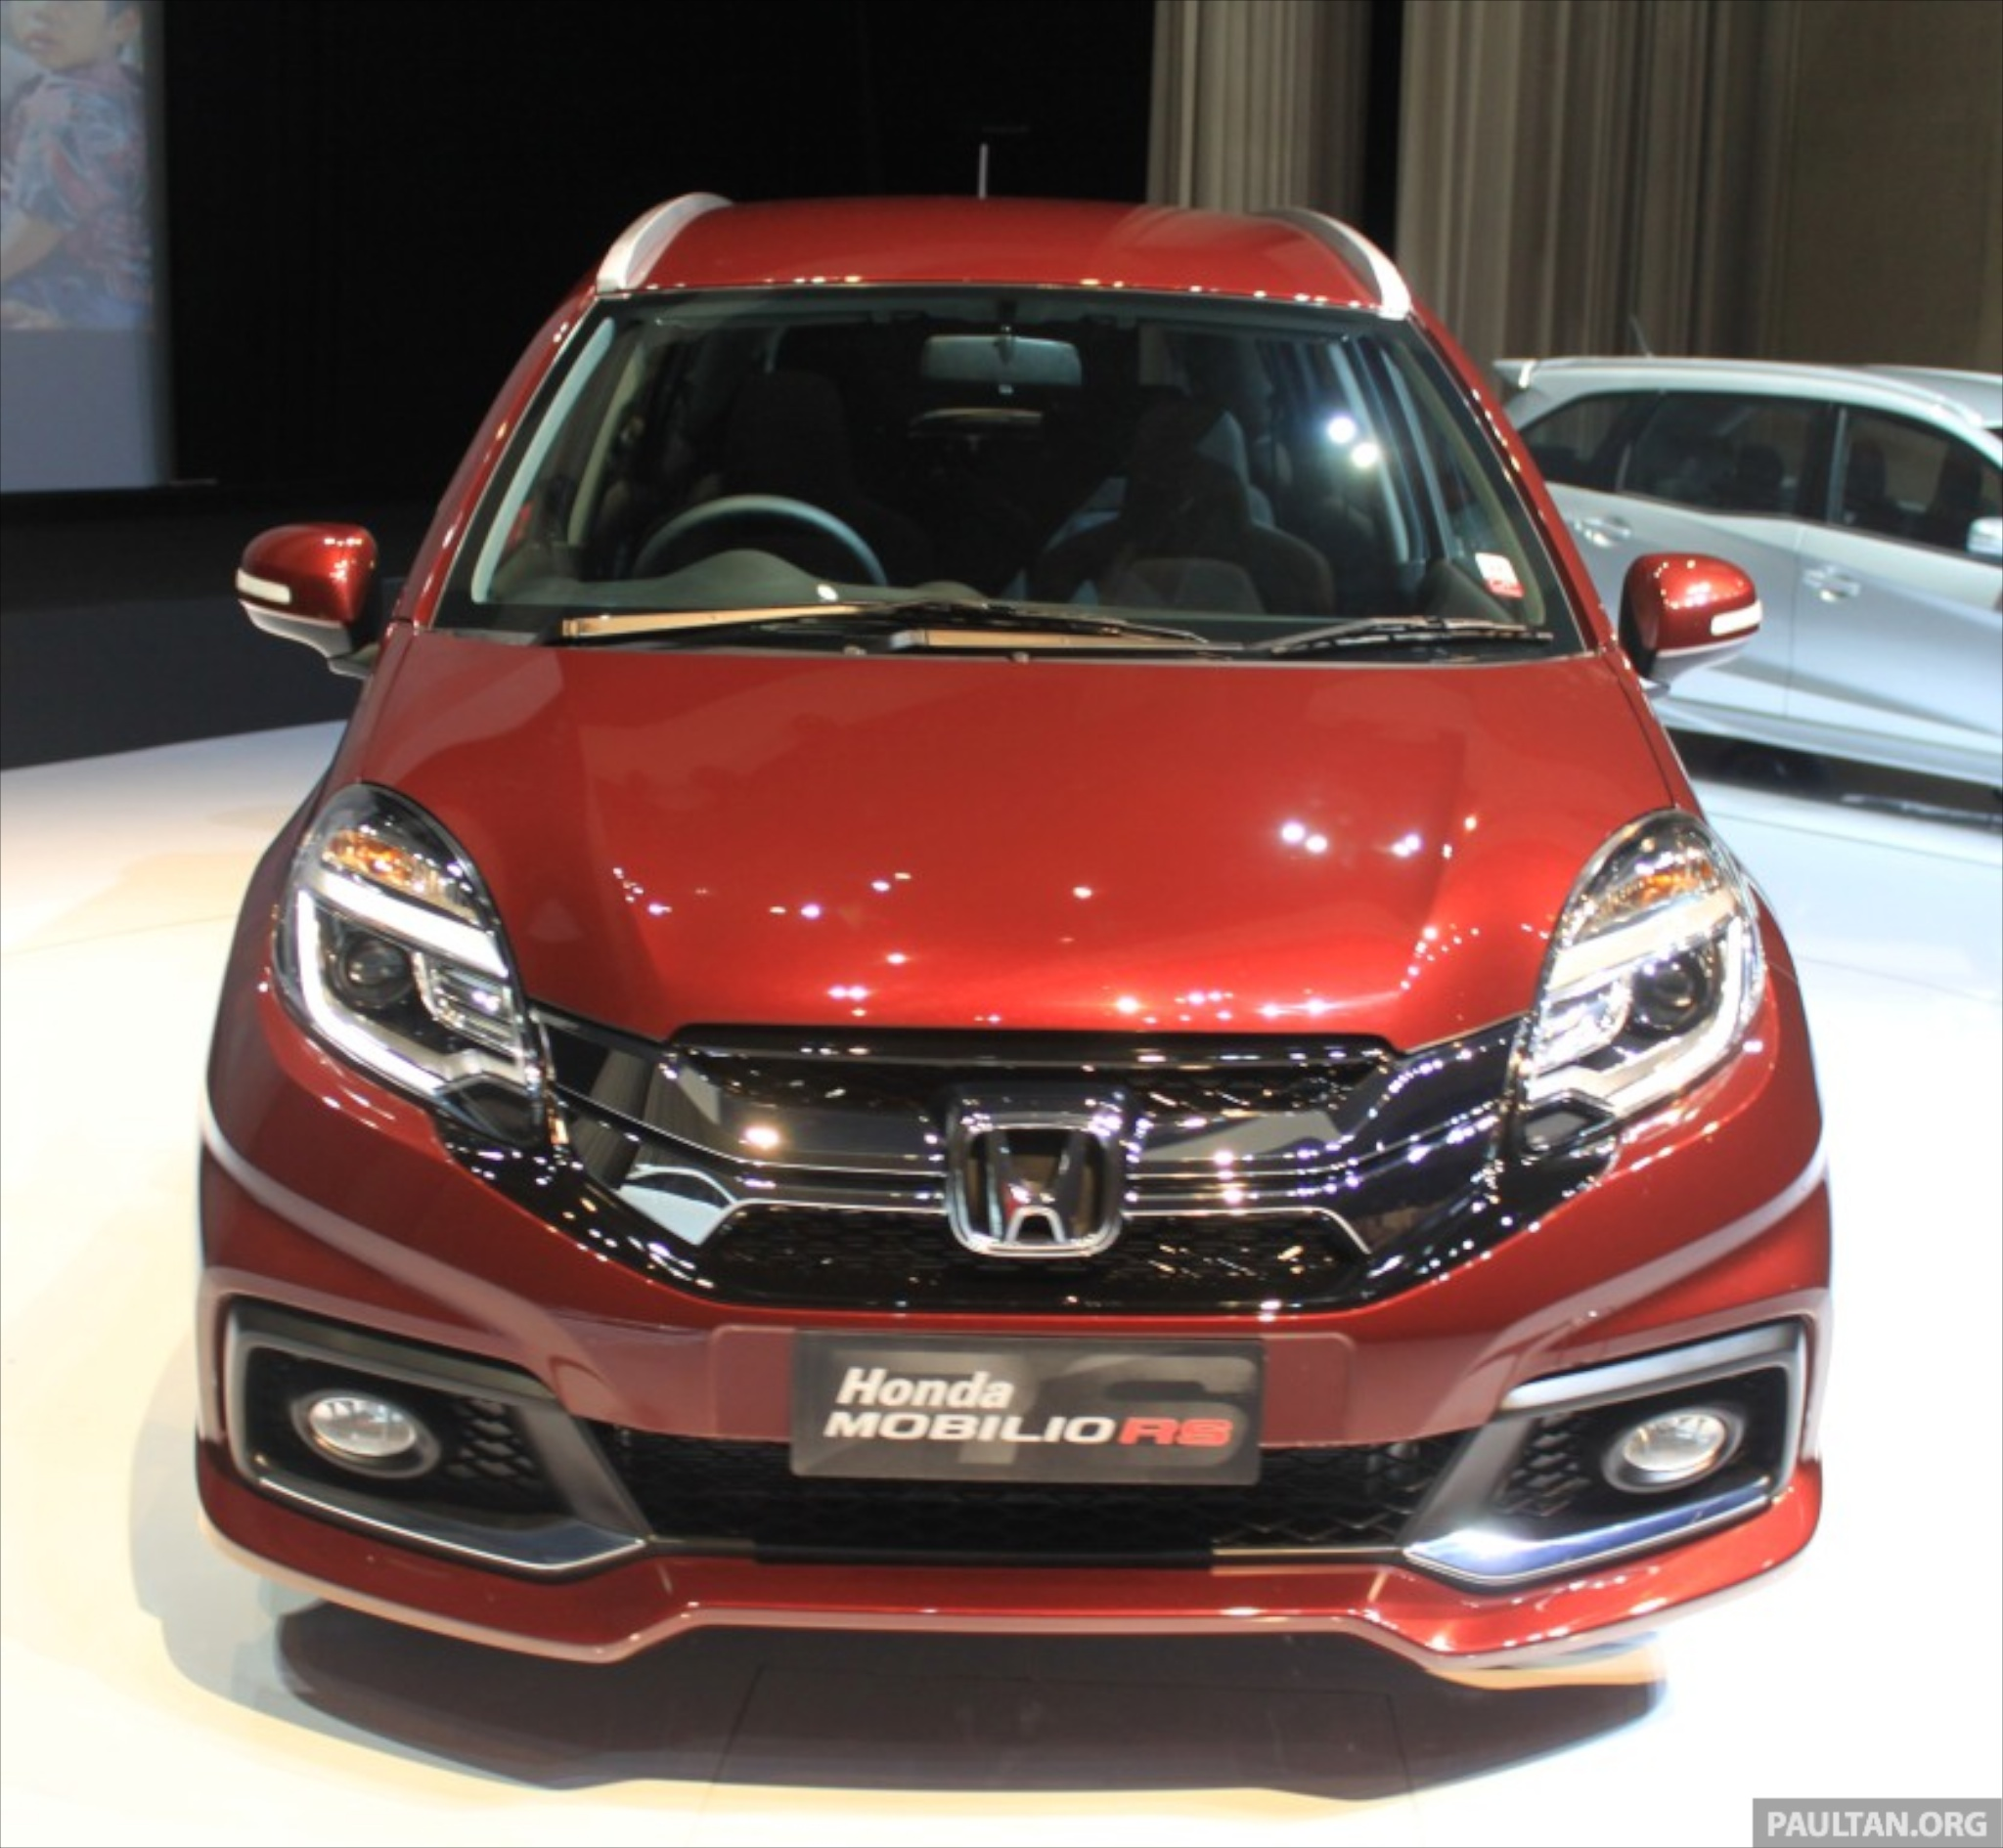 Honda Mobilio Rs Range Topper Launched In Indonesia Image